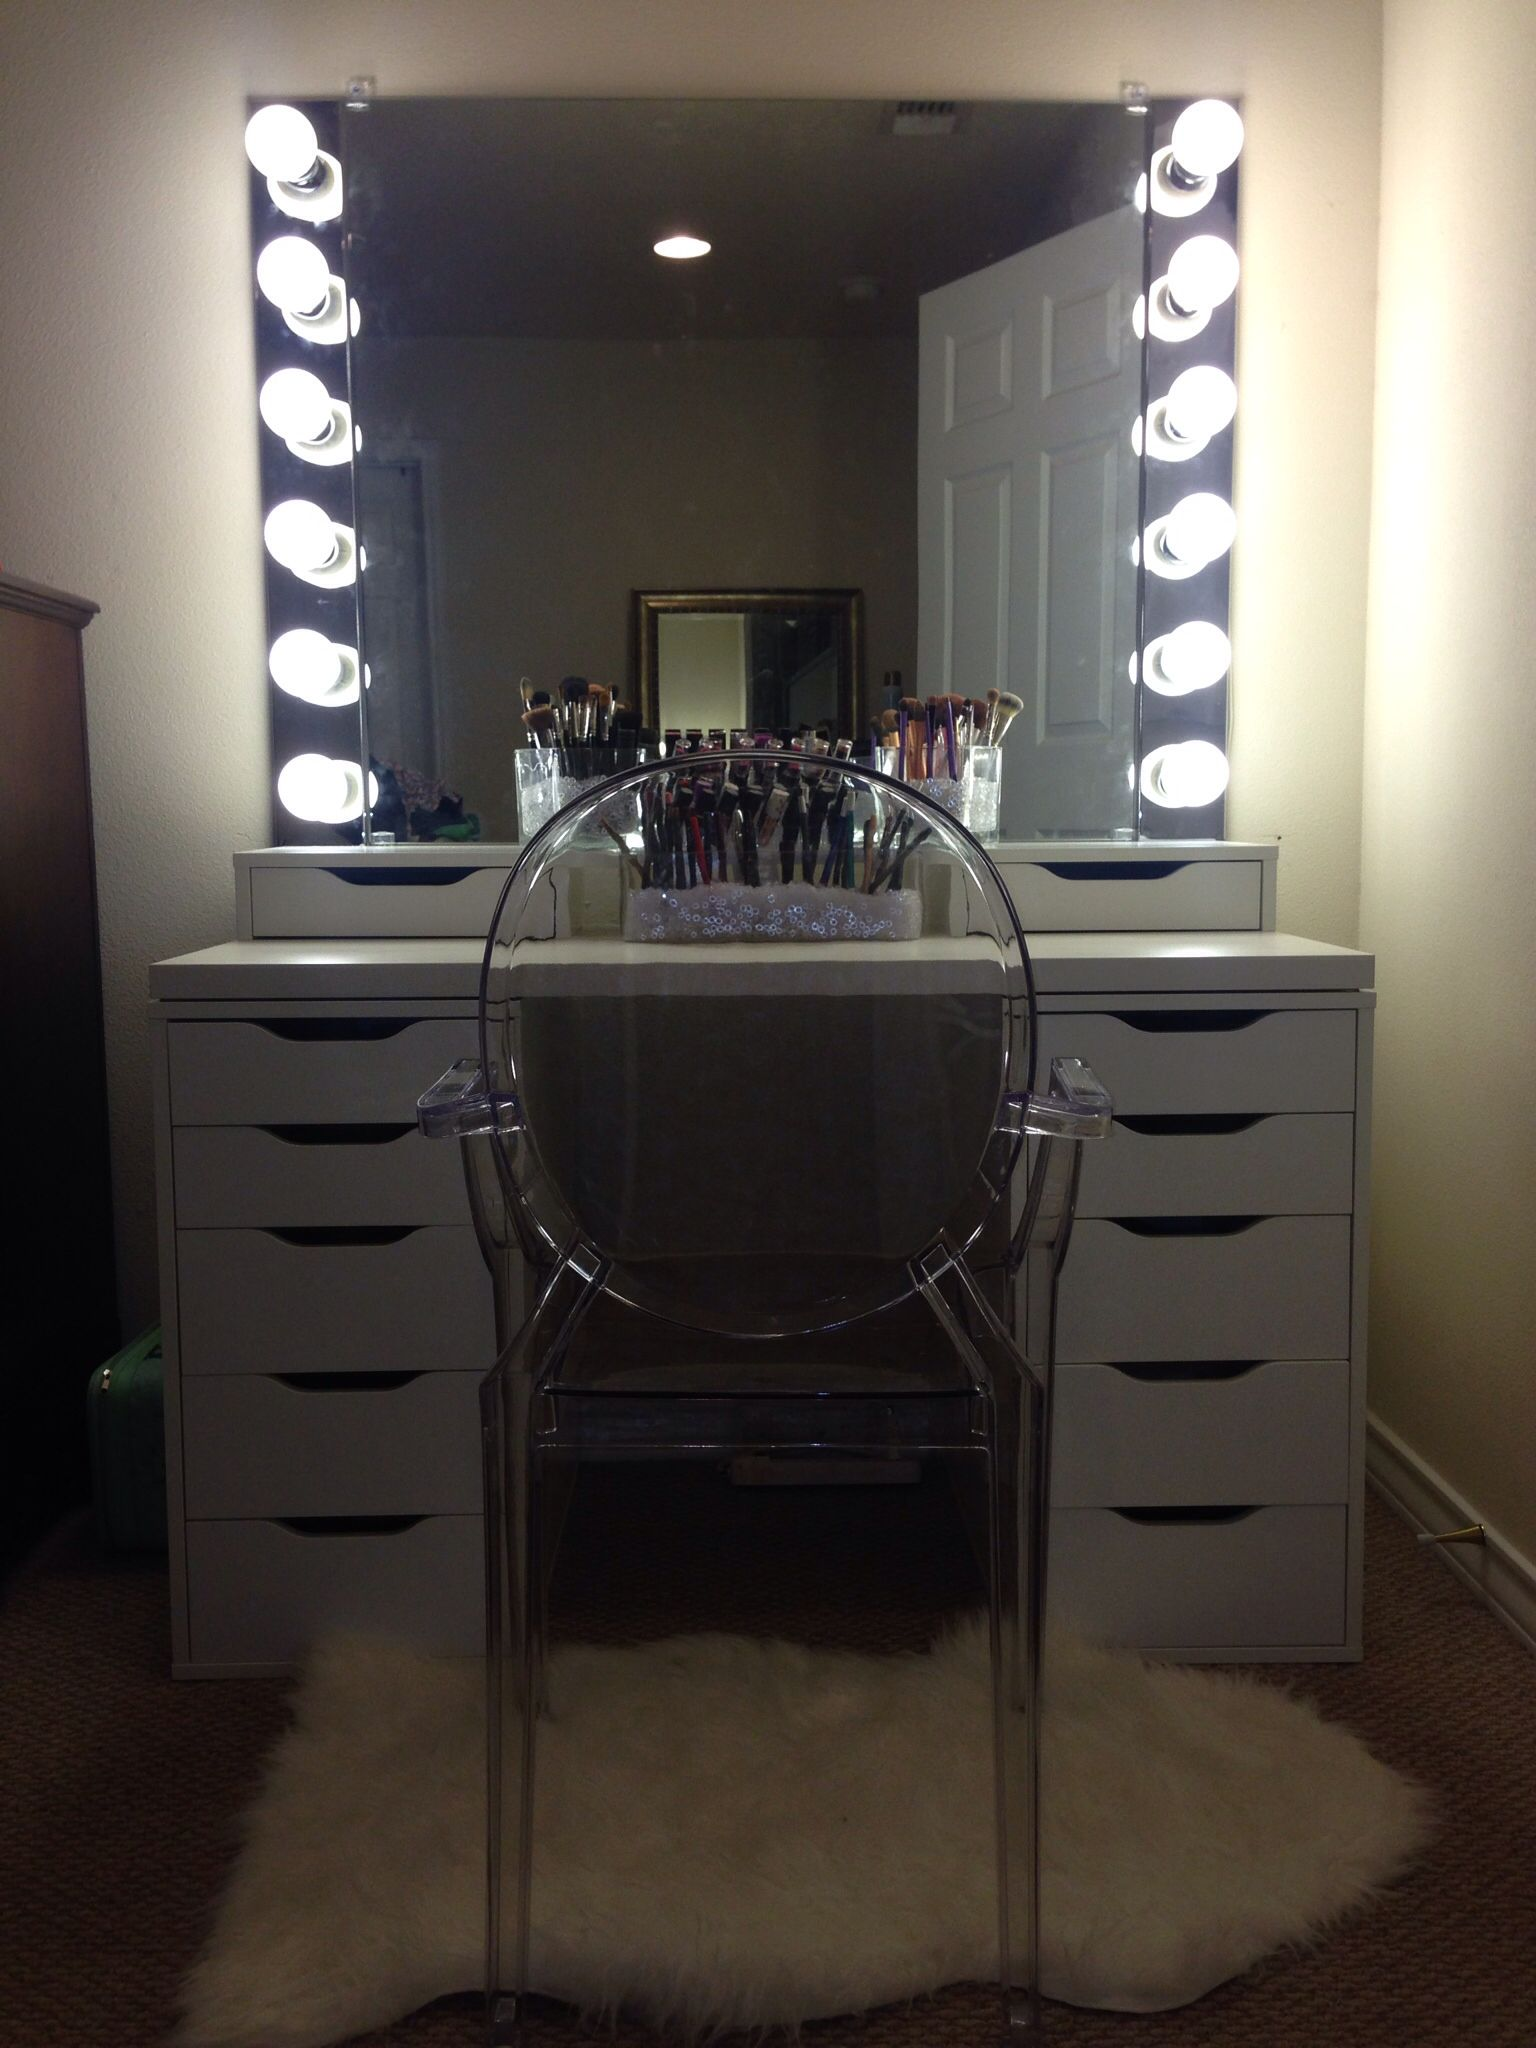 Charmant Hollywood Vanity Mirror With Lights, Makeup Vanity Mirror With Lights,  Vanity Mirror With Lights Ikea, Lighted Makeup Mirror, #Hollywood #Lights # Vanity